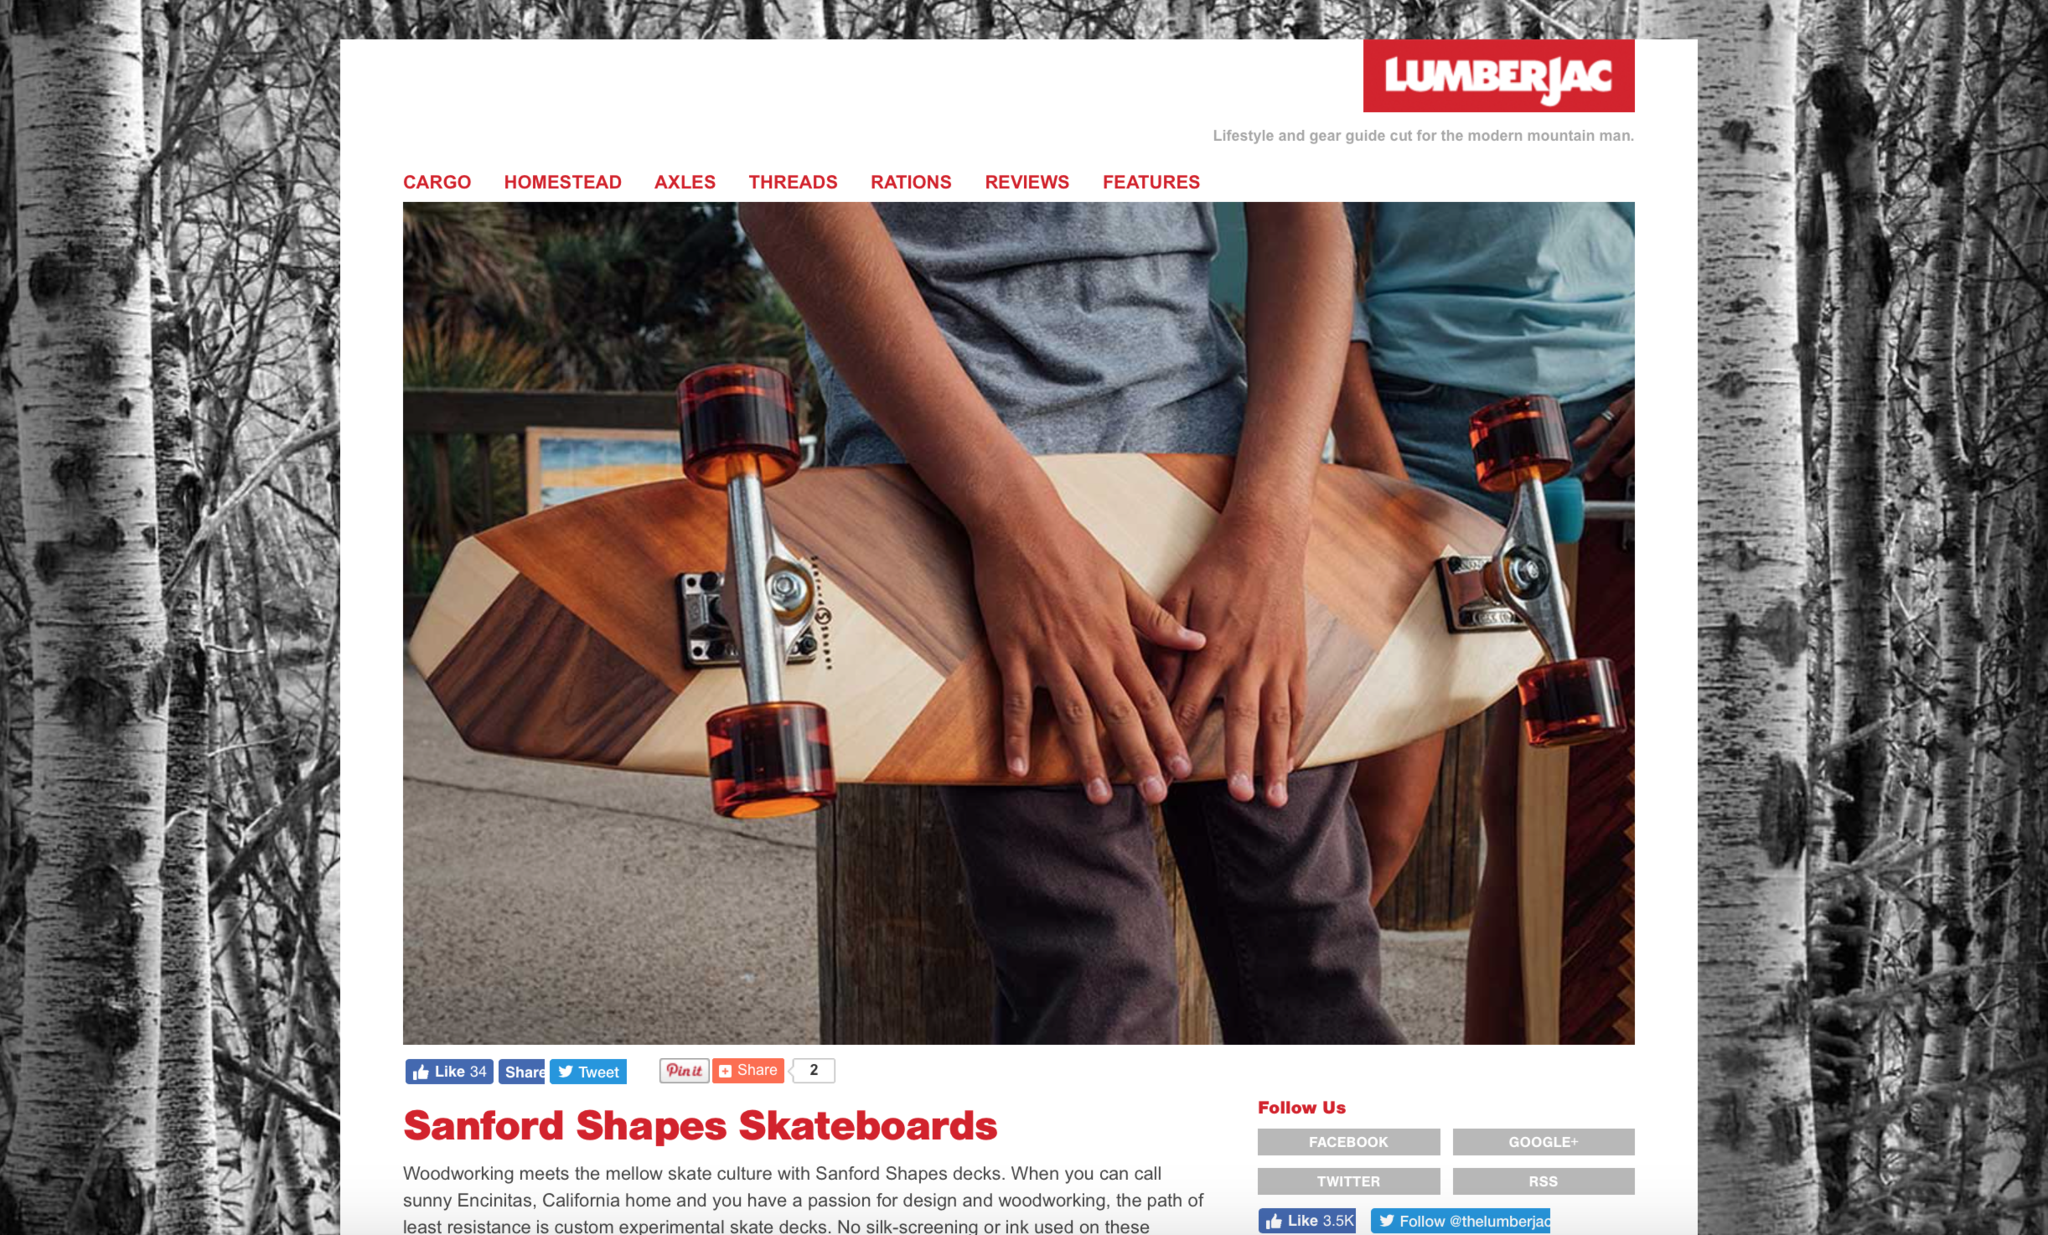 Sanford Shapes featured on Lumberjac.com